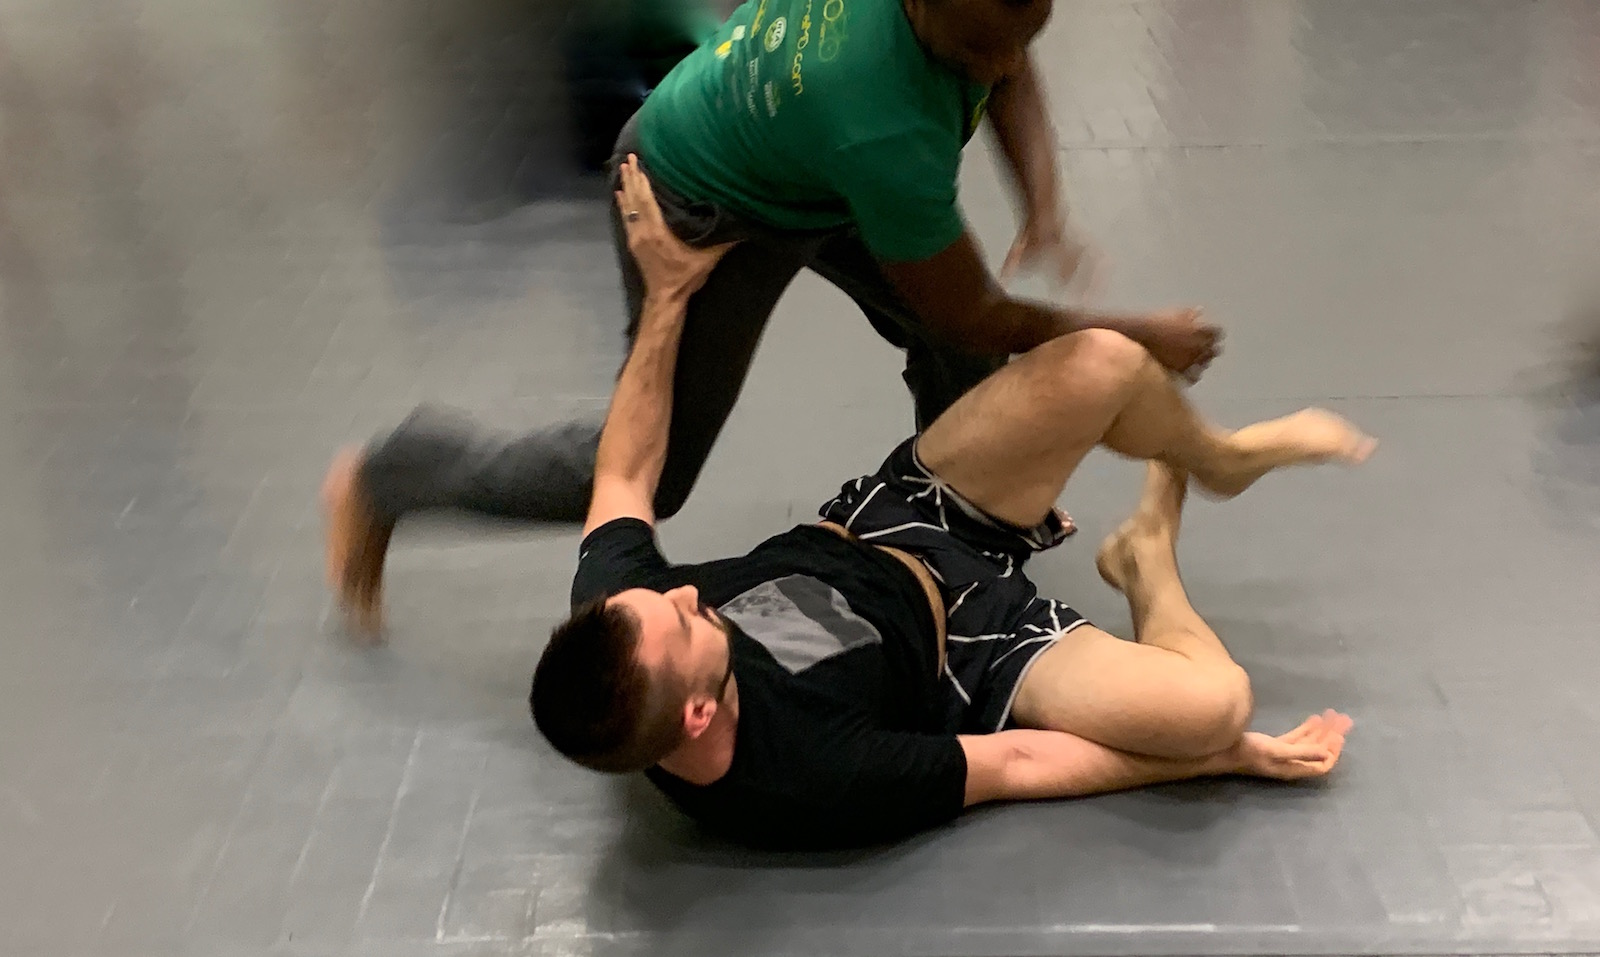 Growth Mindset Through Jiu Jitsu Practice